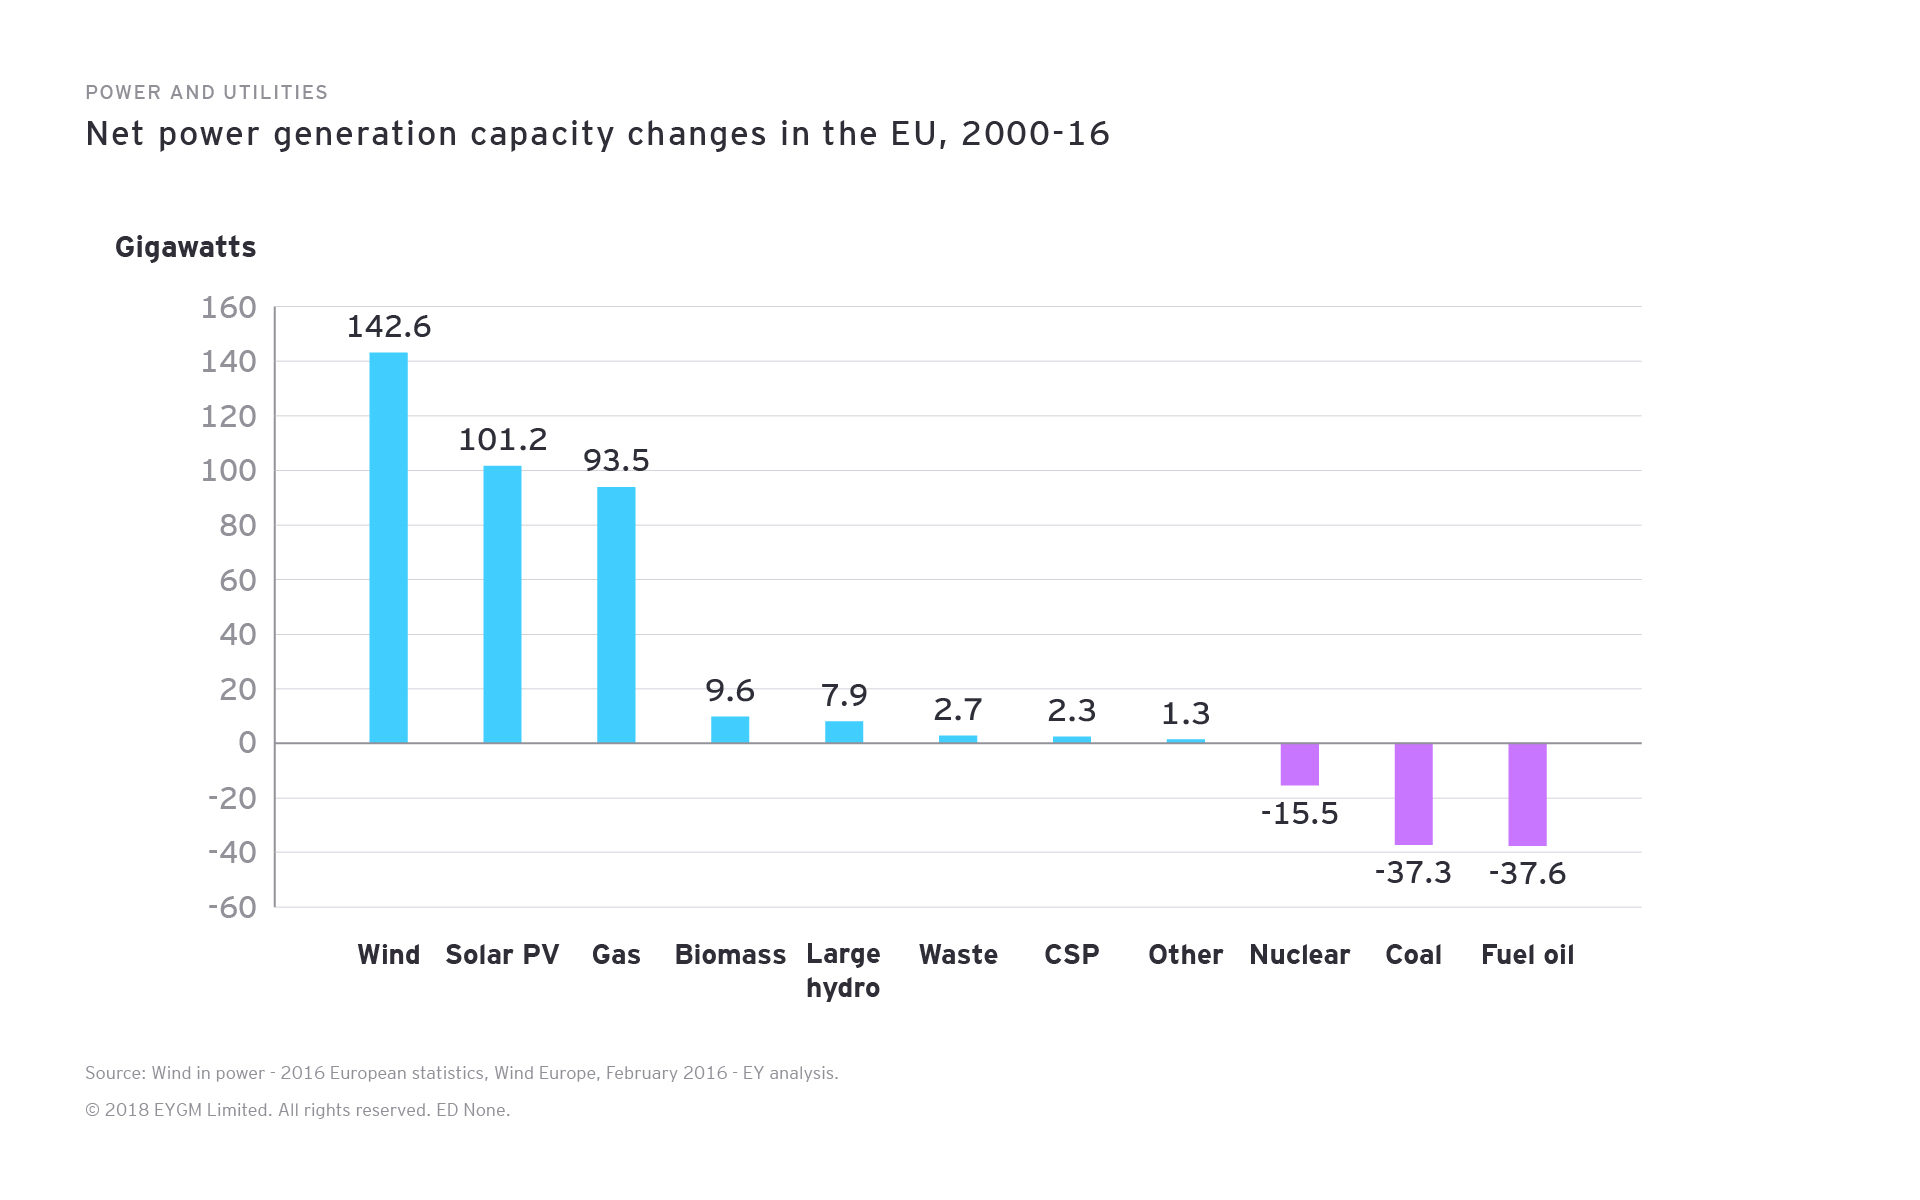 Power and Utilities. Net power generation capacity changes in the EU, 2000-16